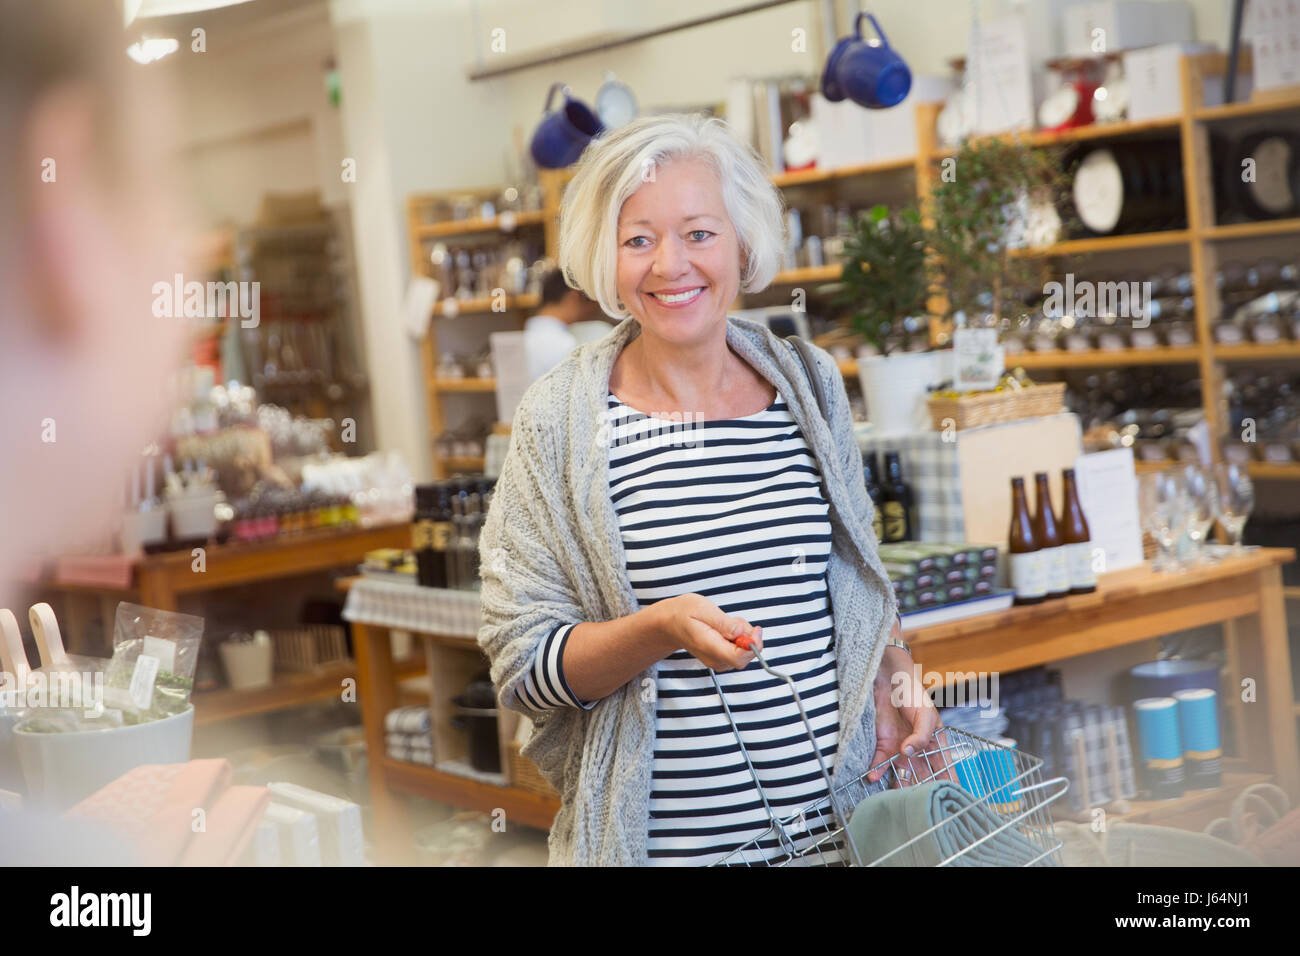 Smiling mature female shopper with basket nearing checkout counter - Stock Image